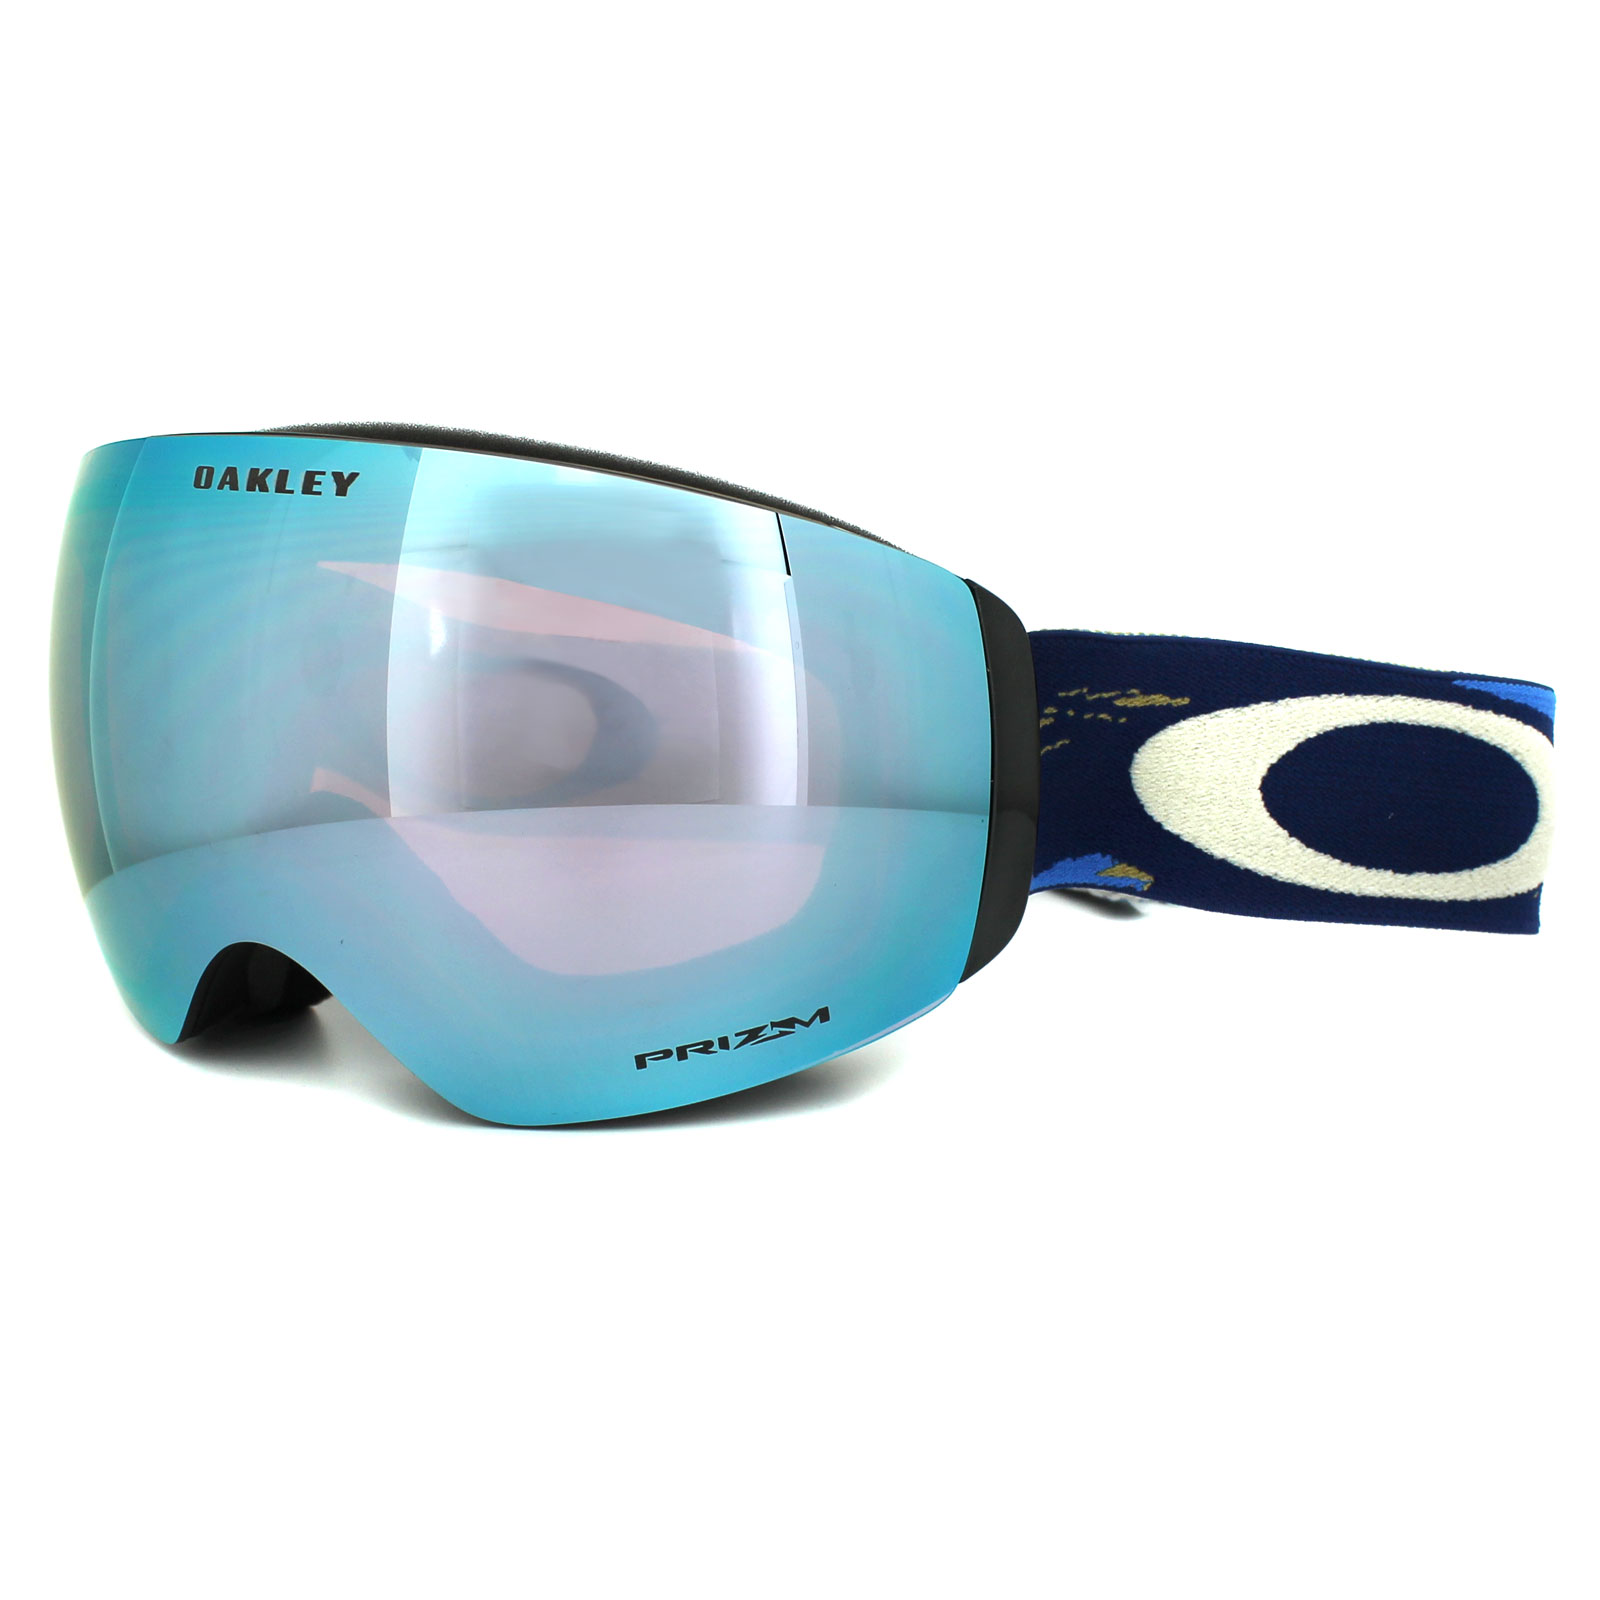 best oakley ski goggles hr2x  Oakley Flight Deck XM Ski Goggles